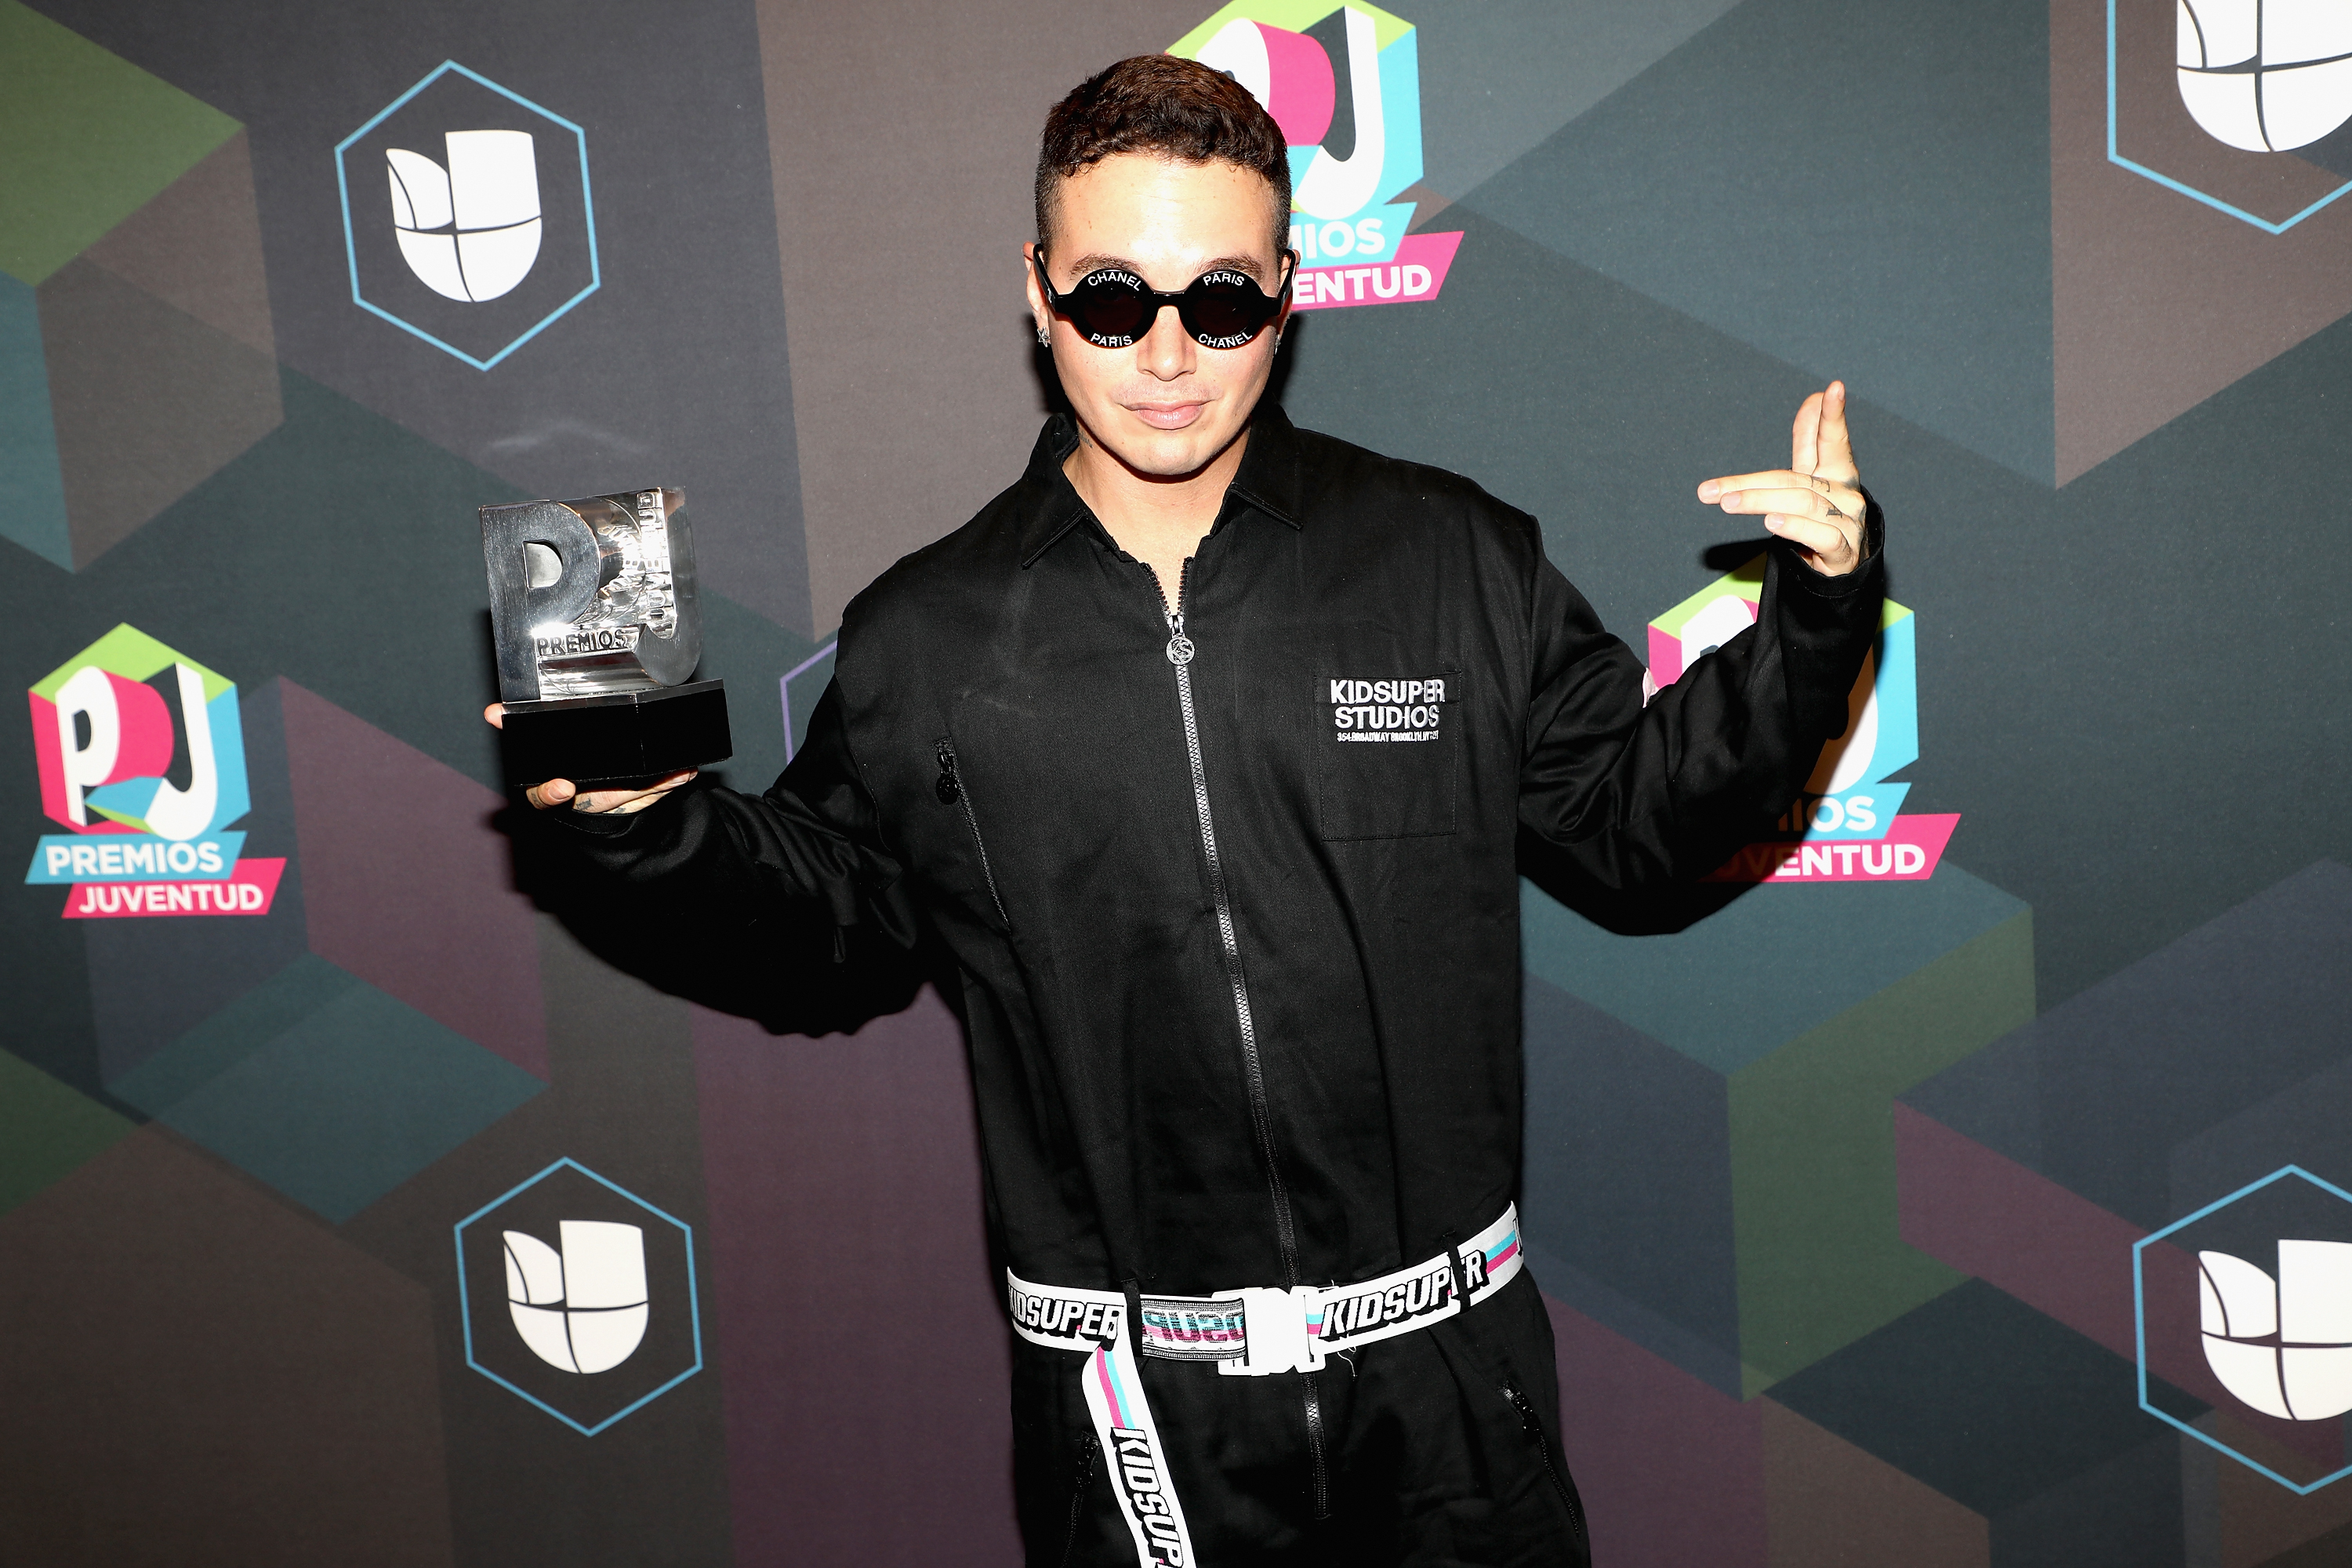 Univision's 'Premios Juventud' 2017 Celebrates The Hottest Musical Artists And Young Latinos Change-Makers - Backstage